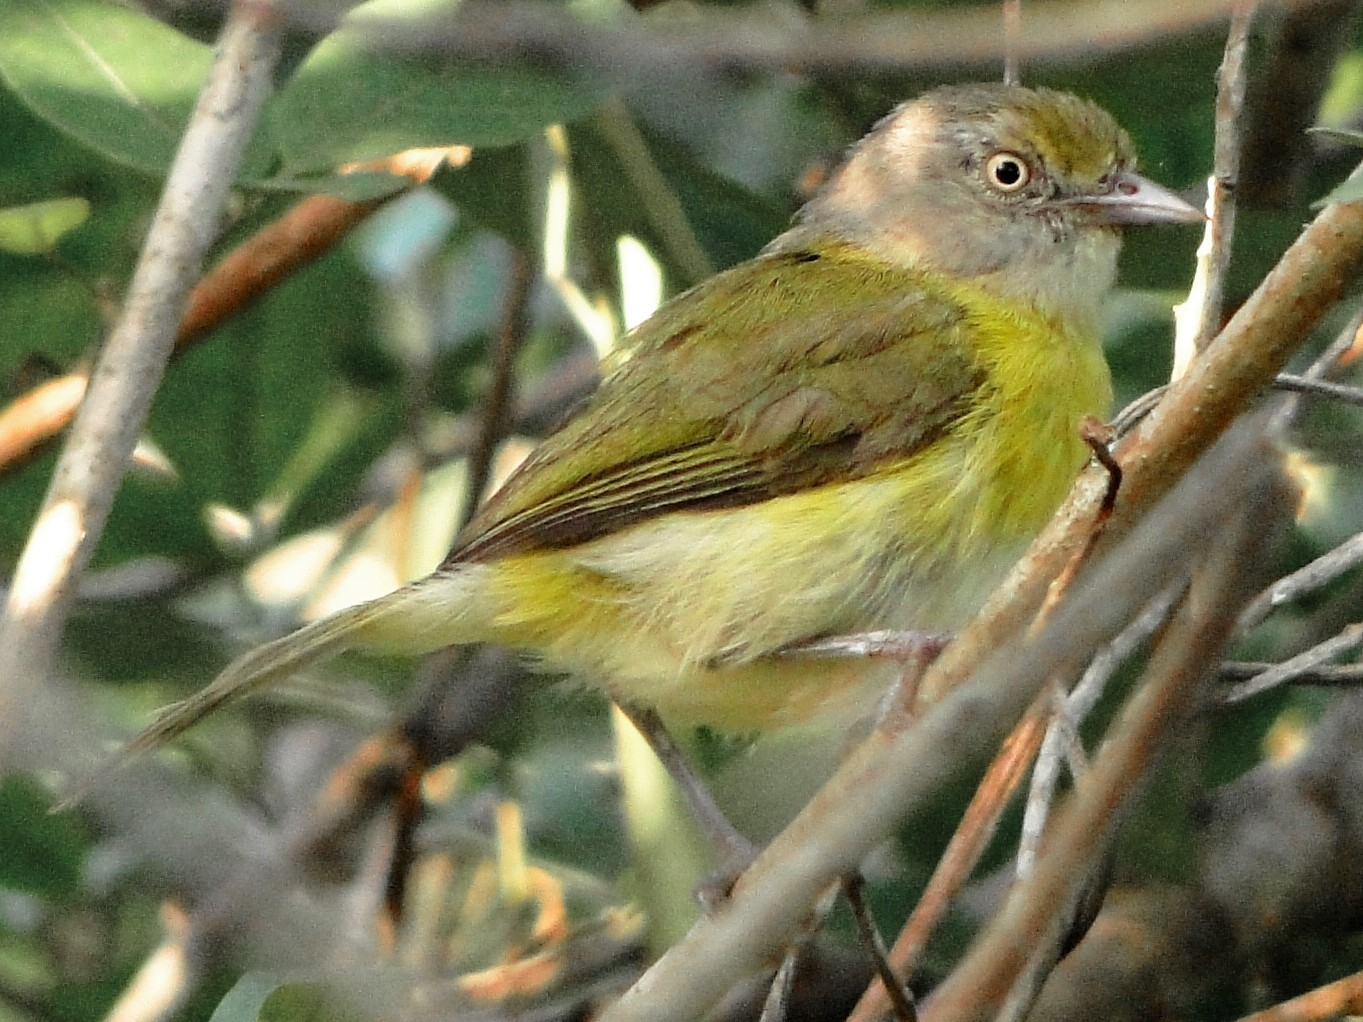 Lemon-chested Greenlet - Carlos Gussoni